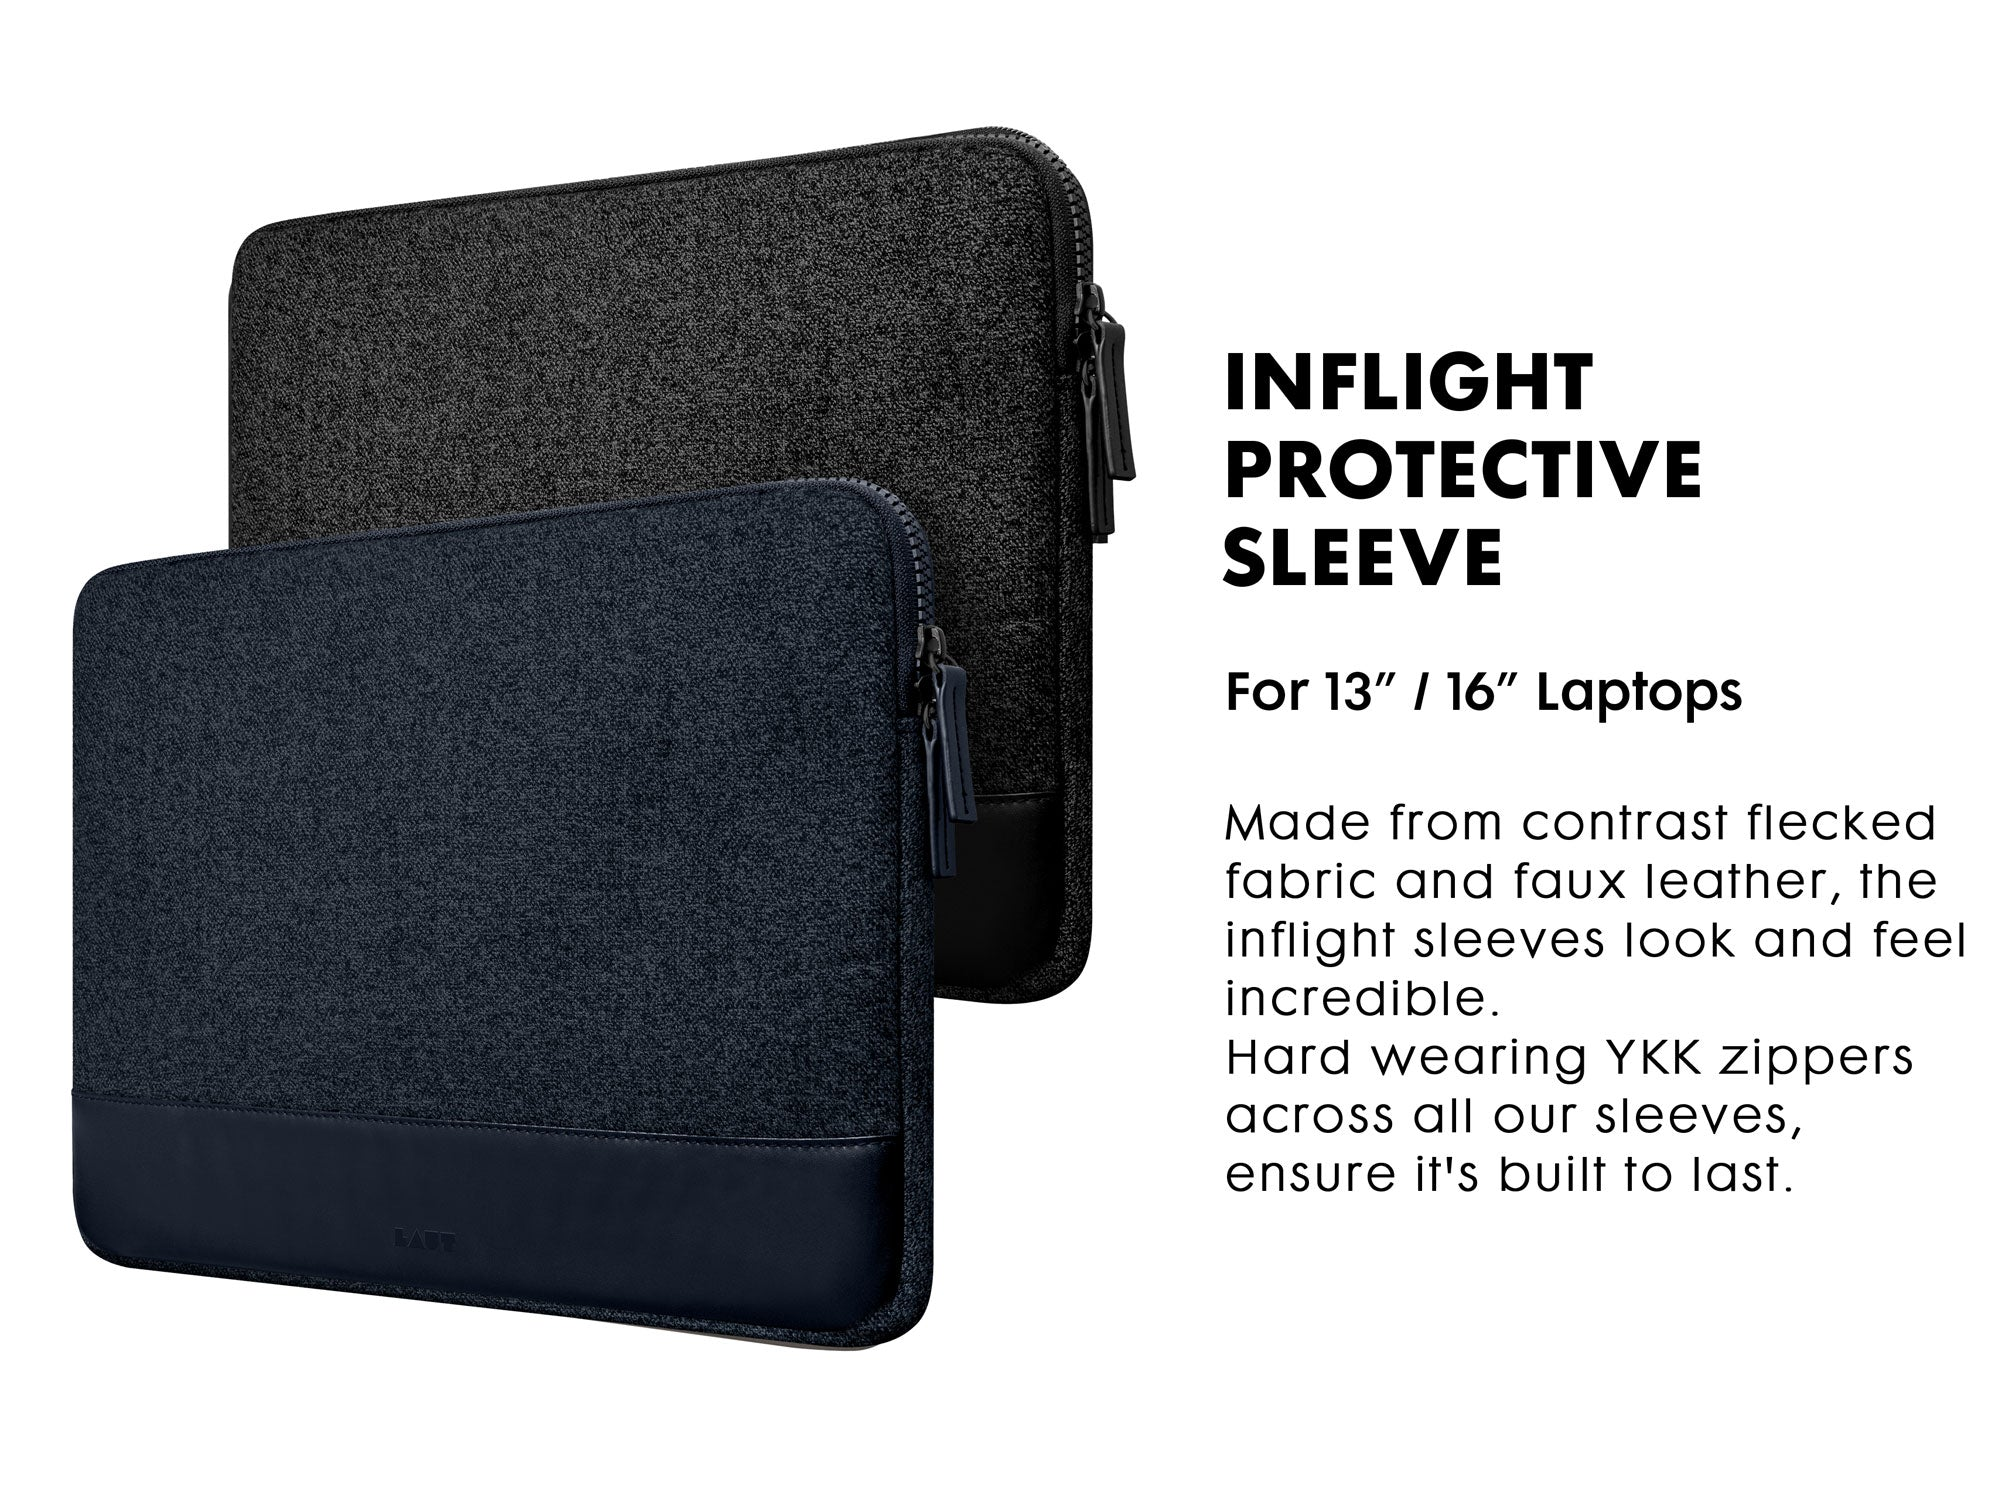 LAUT InFlight Protective Sleeve for MacBook 13-inch / MacBook 16-inch